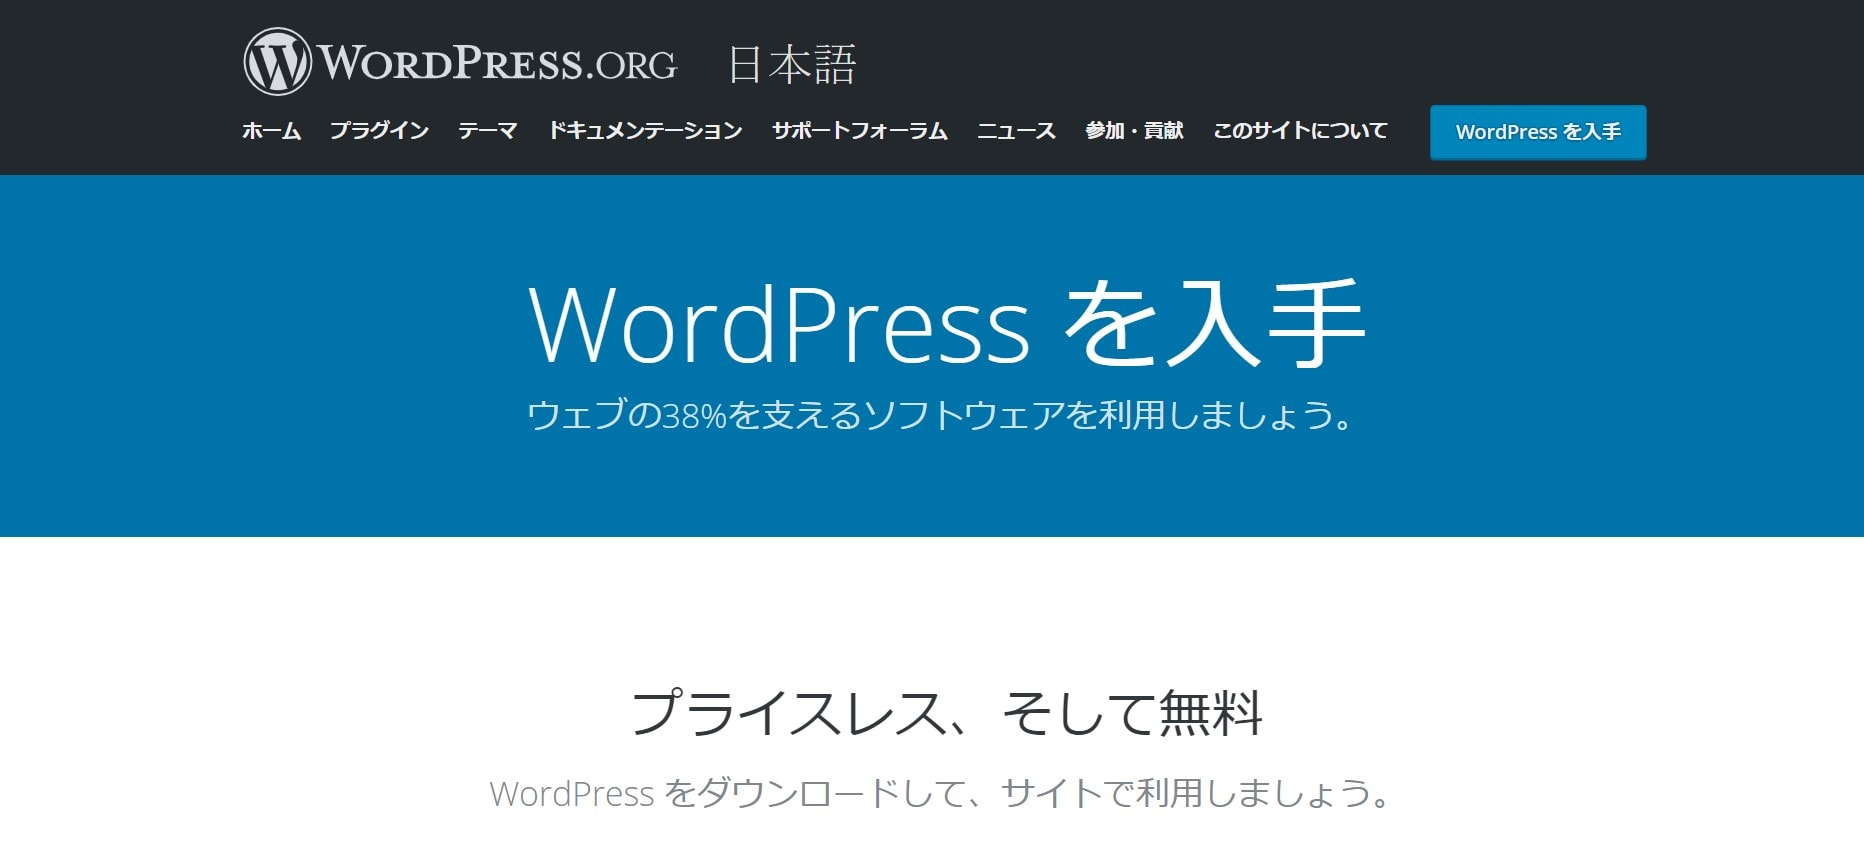 Wordpressの画像